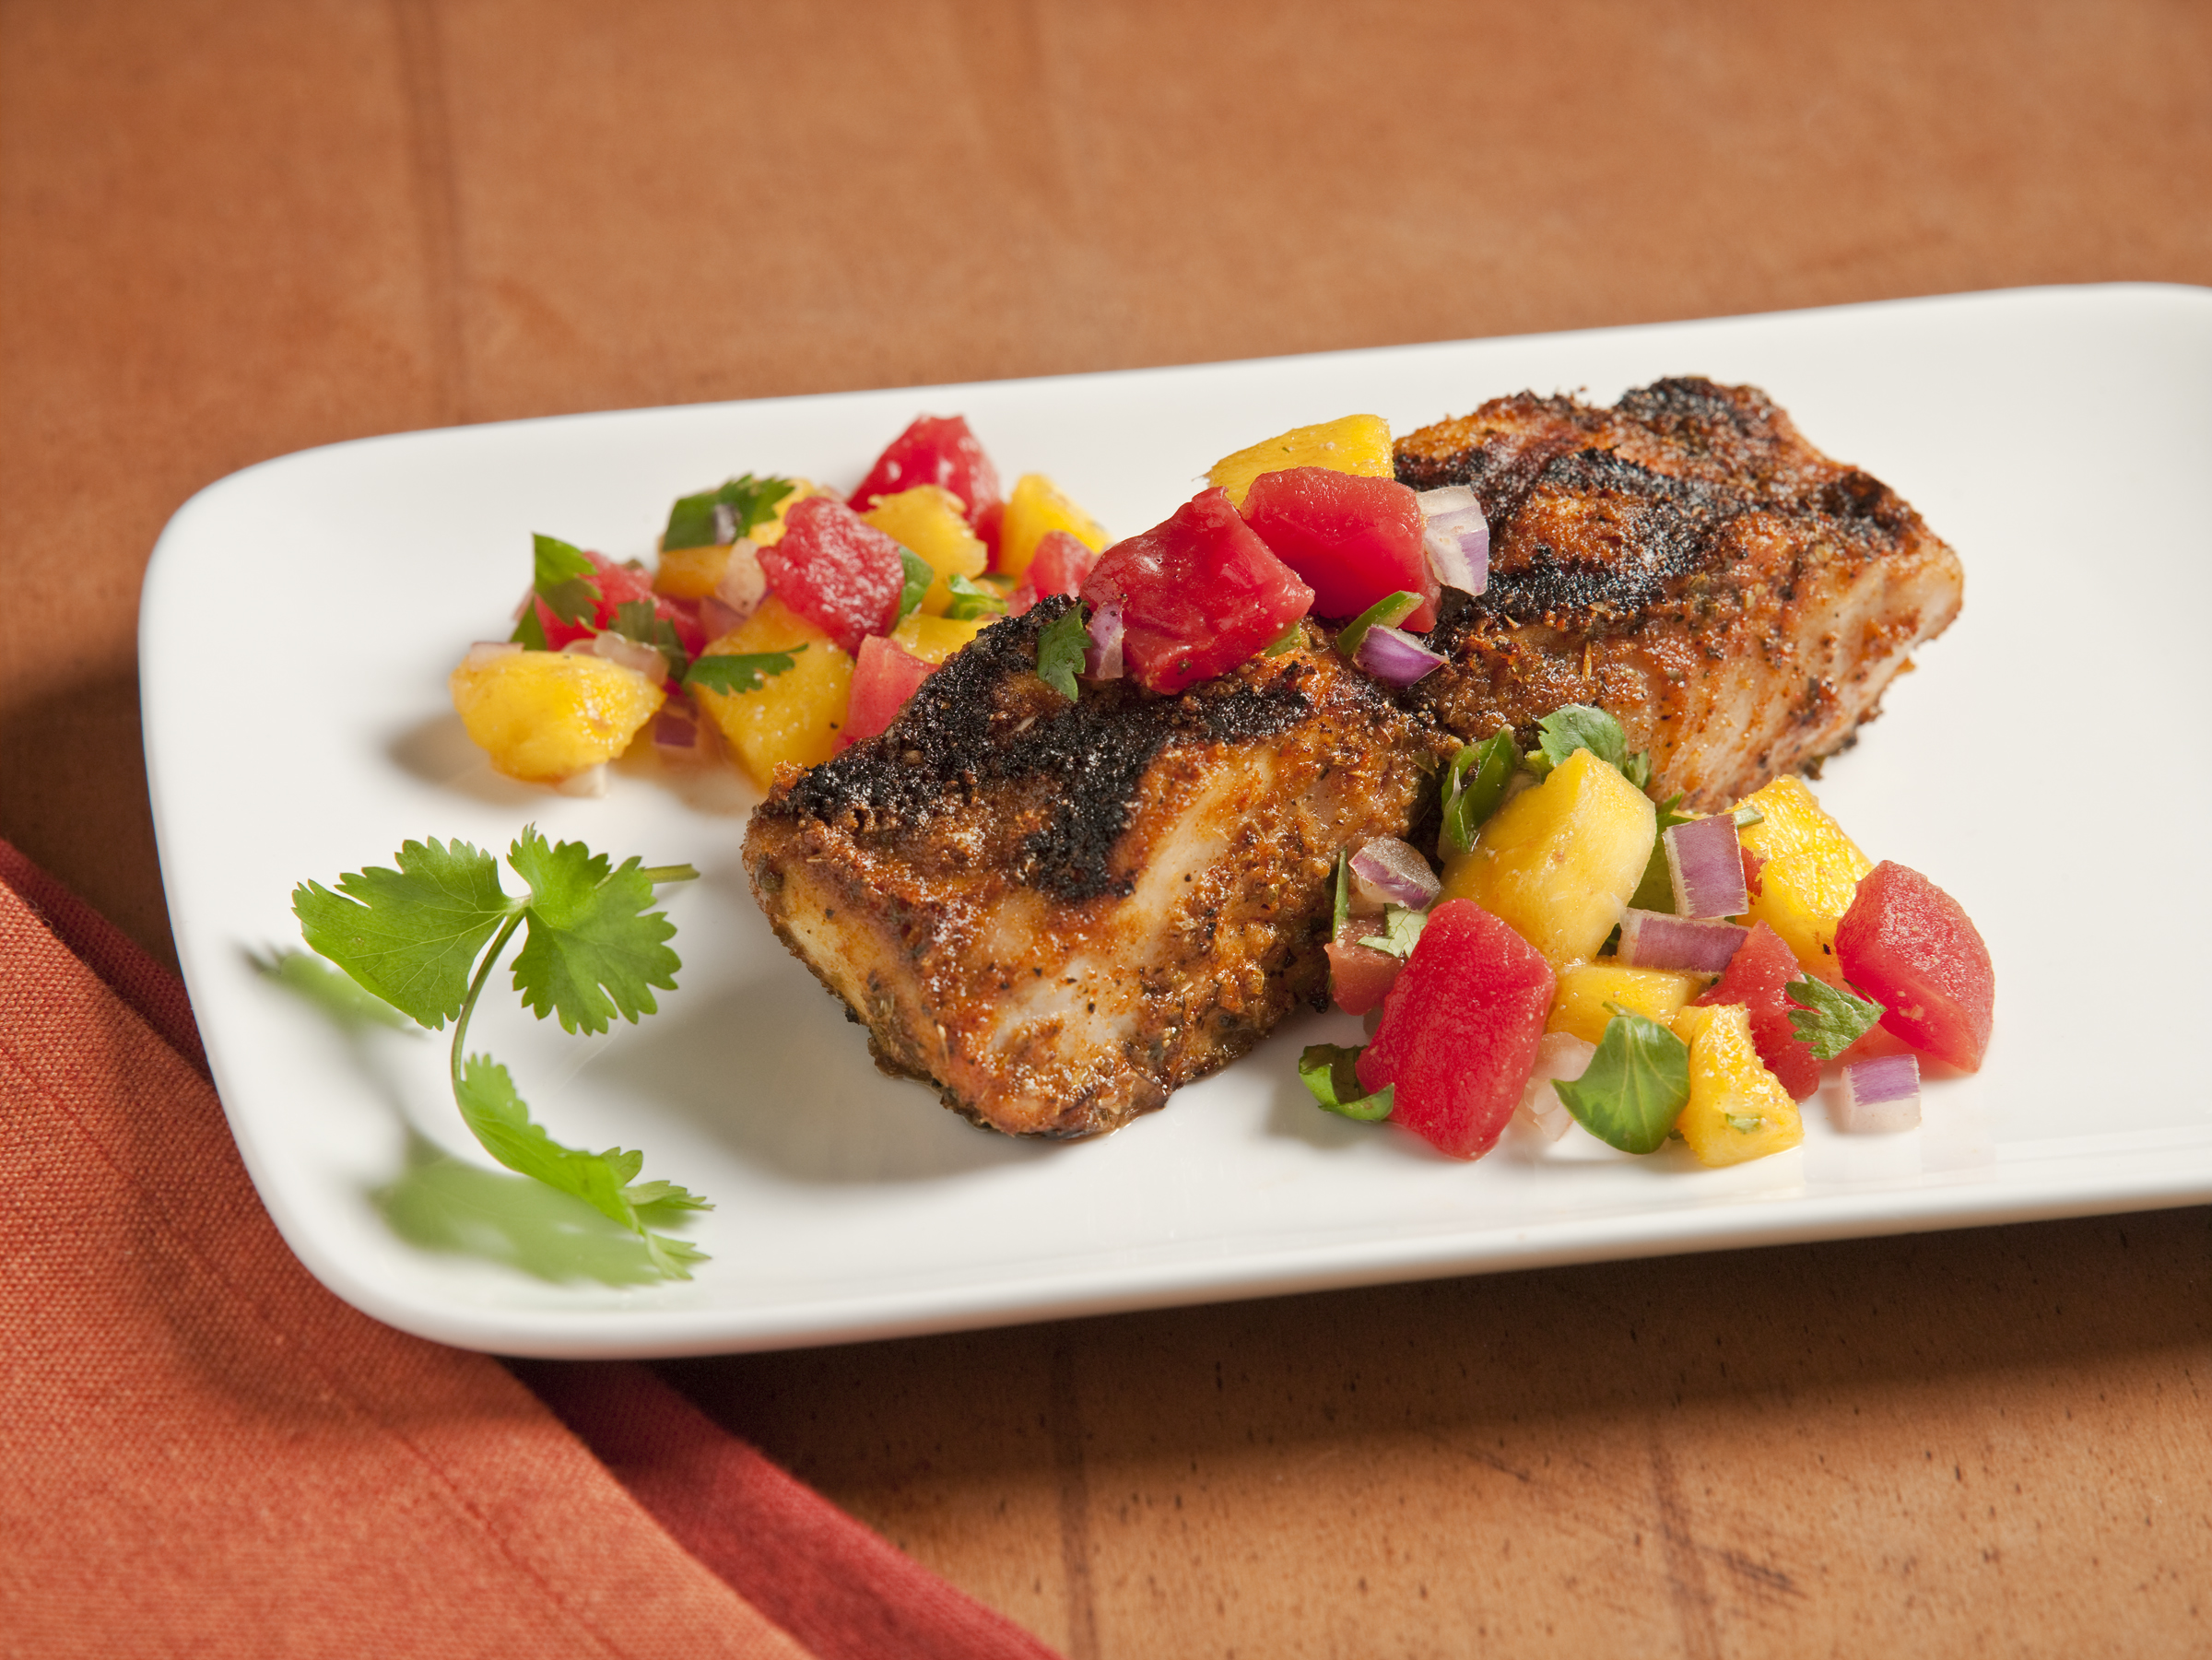 Blackened Mahi Mahi with Mango Salsa